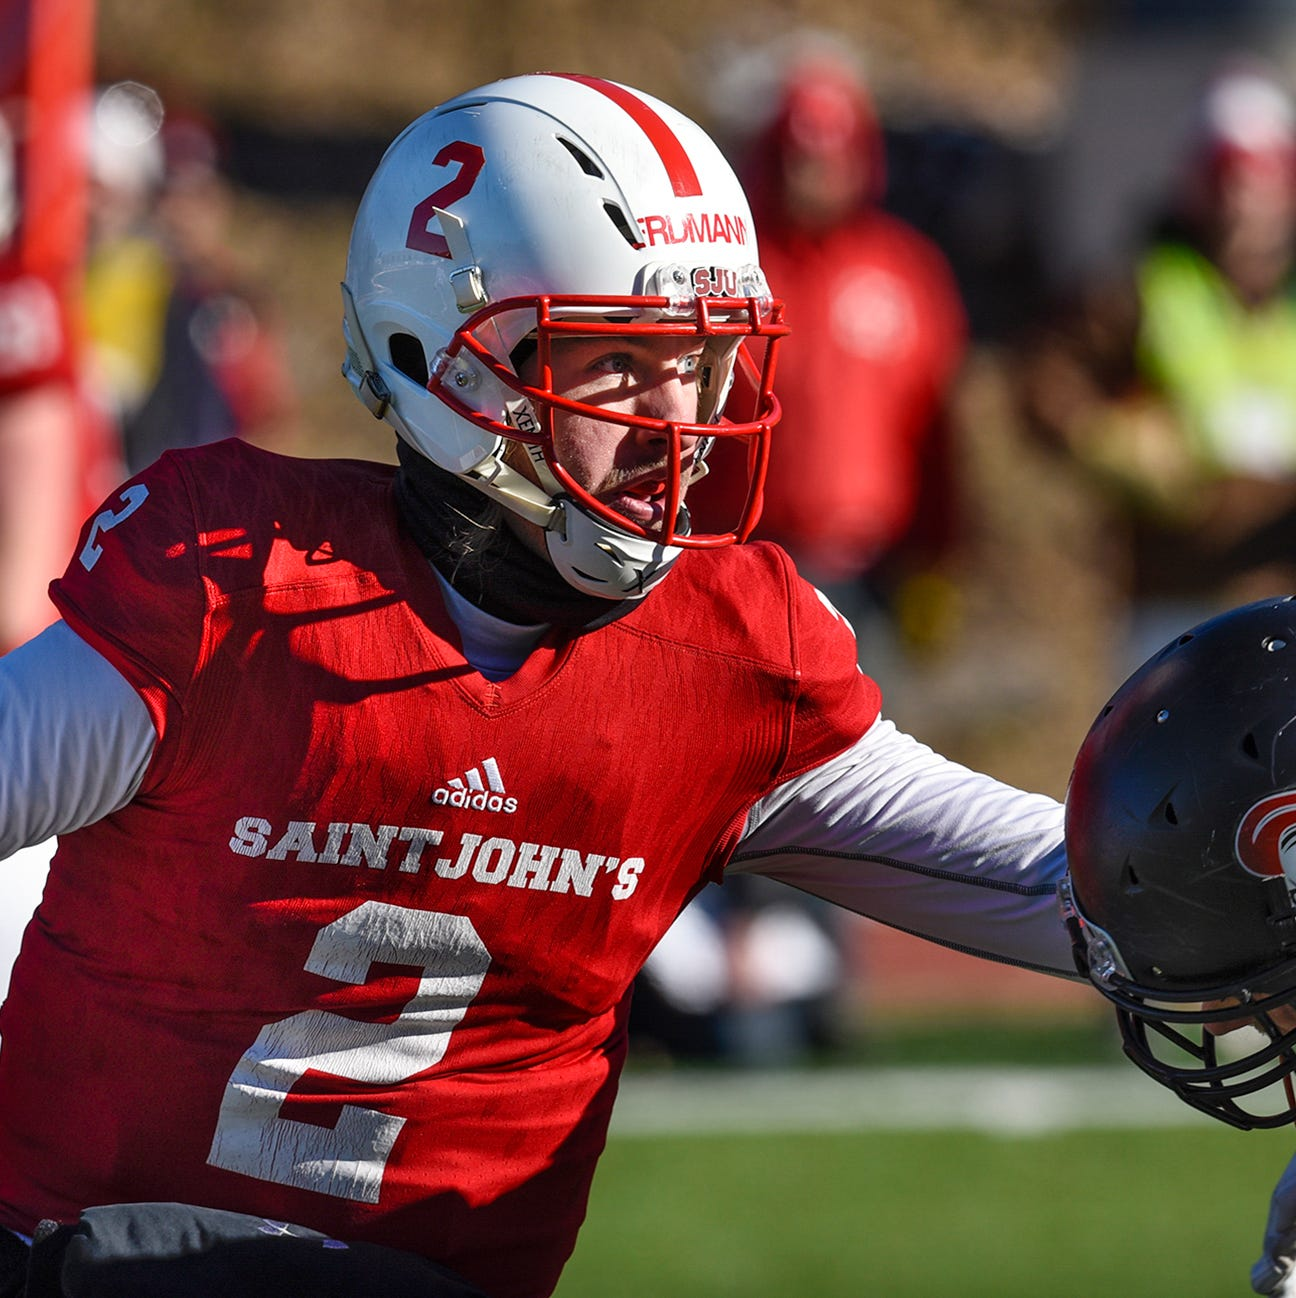 SJU's Erdmann named 2018 Gagliardi Trophy winner